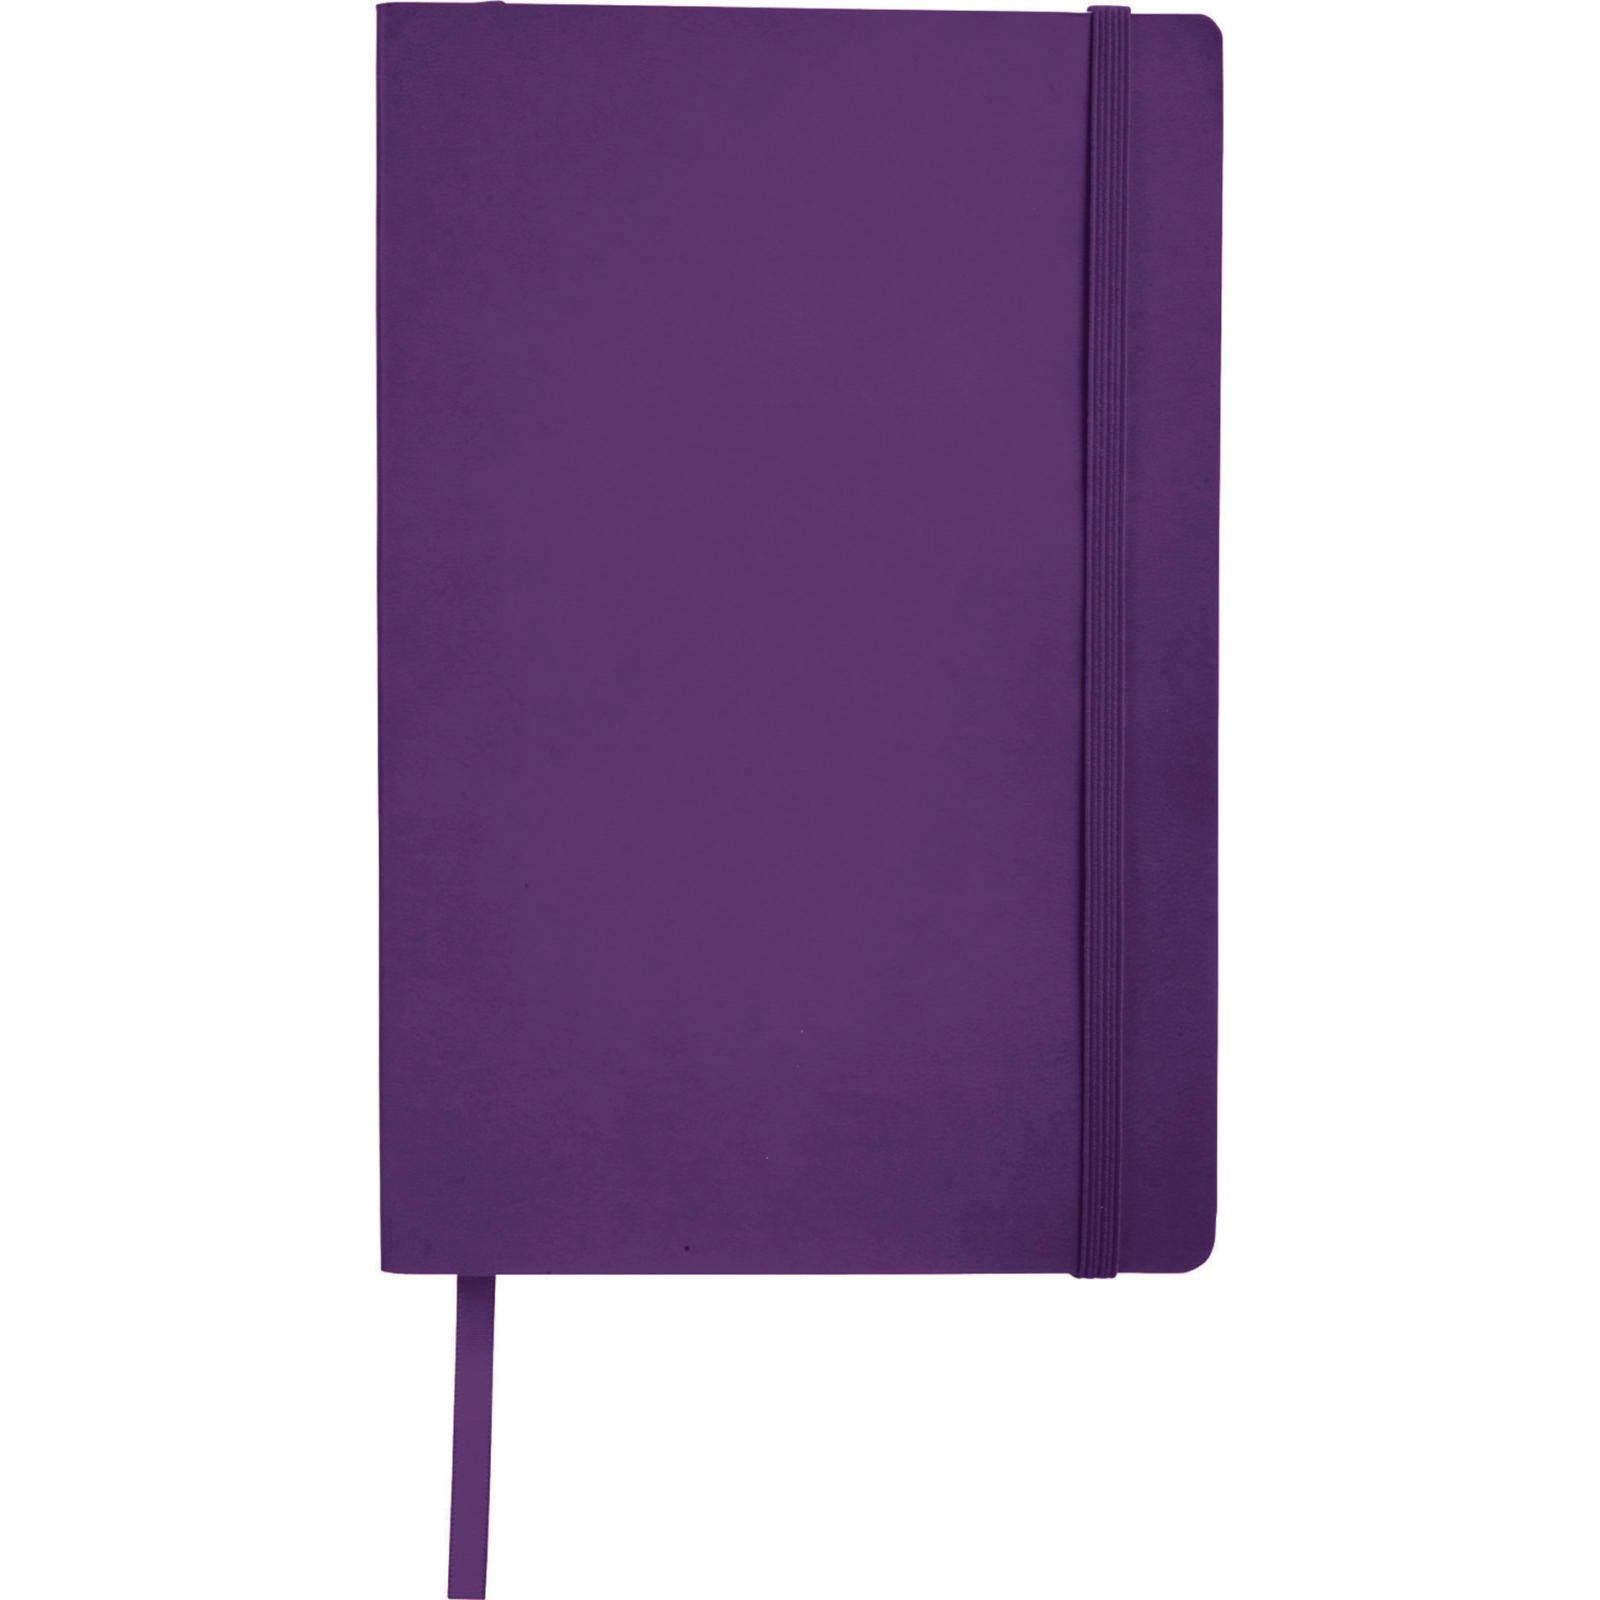 Pedova Soft Bound JournalBooks - Purple